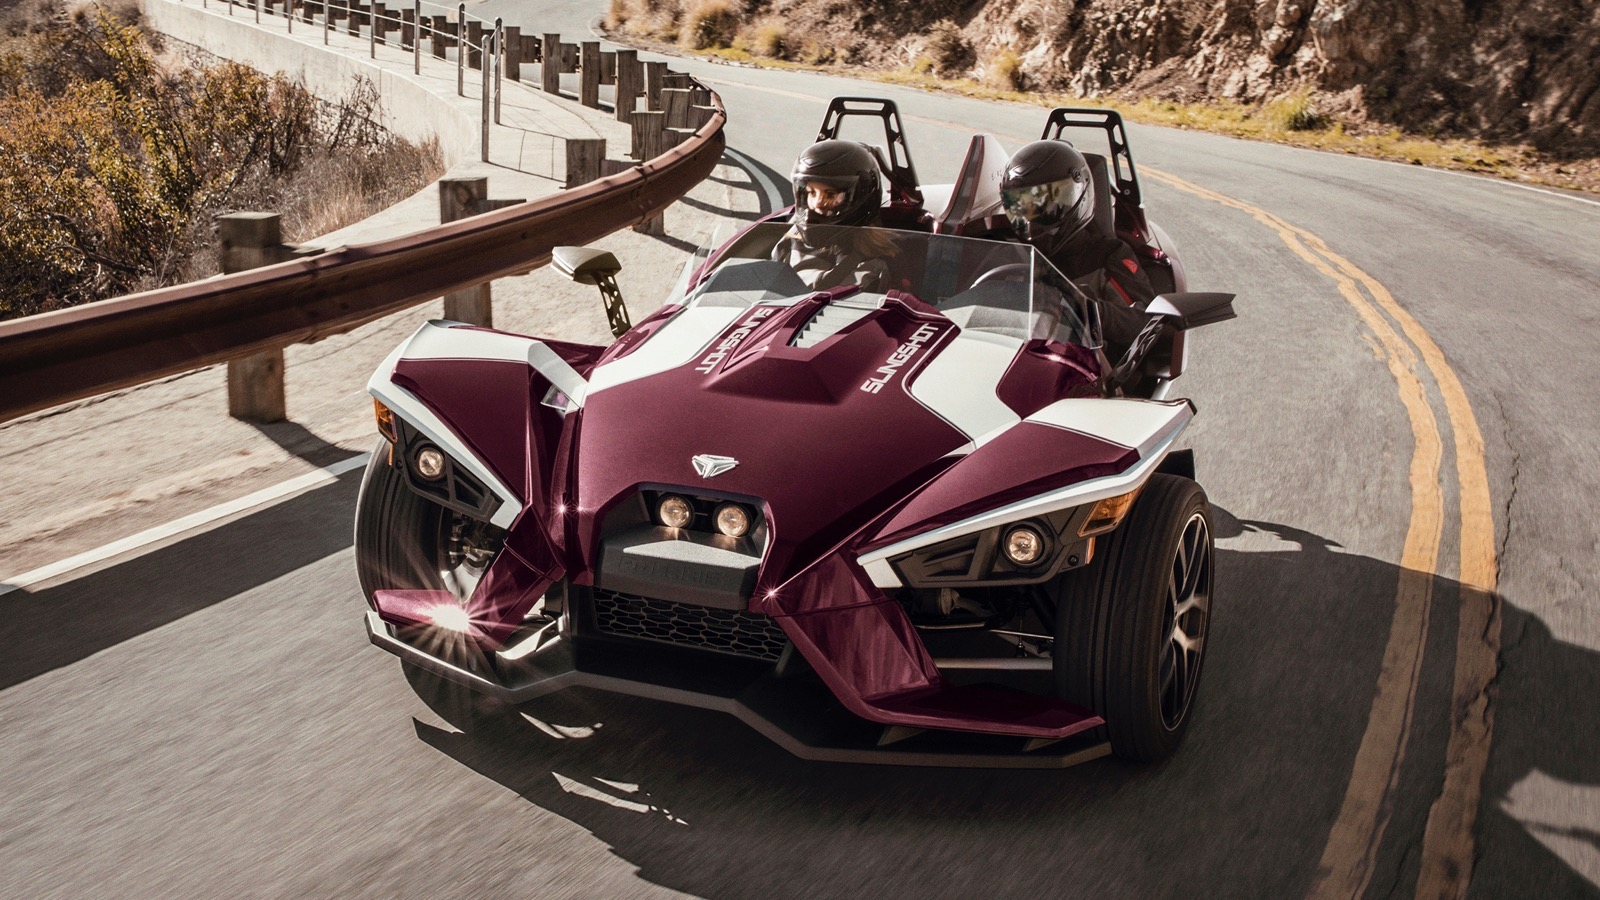 2017_Polaris_Slingshot_SL_LE_Midnight_Cherry_edition_04